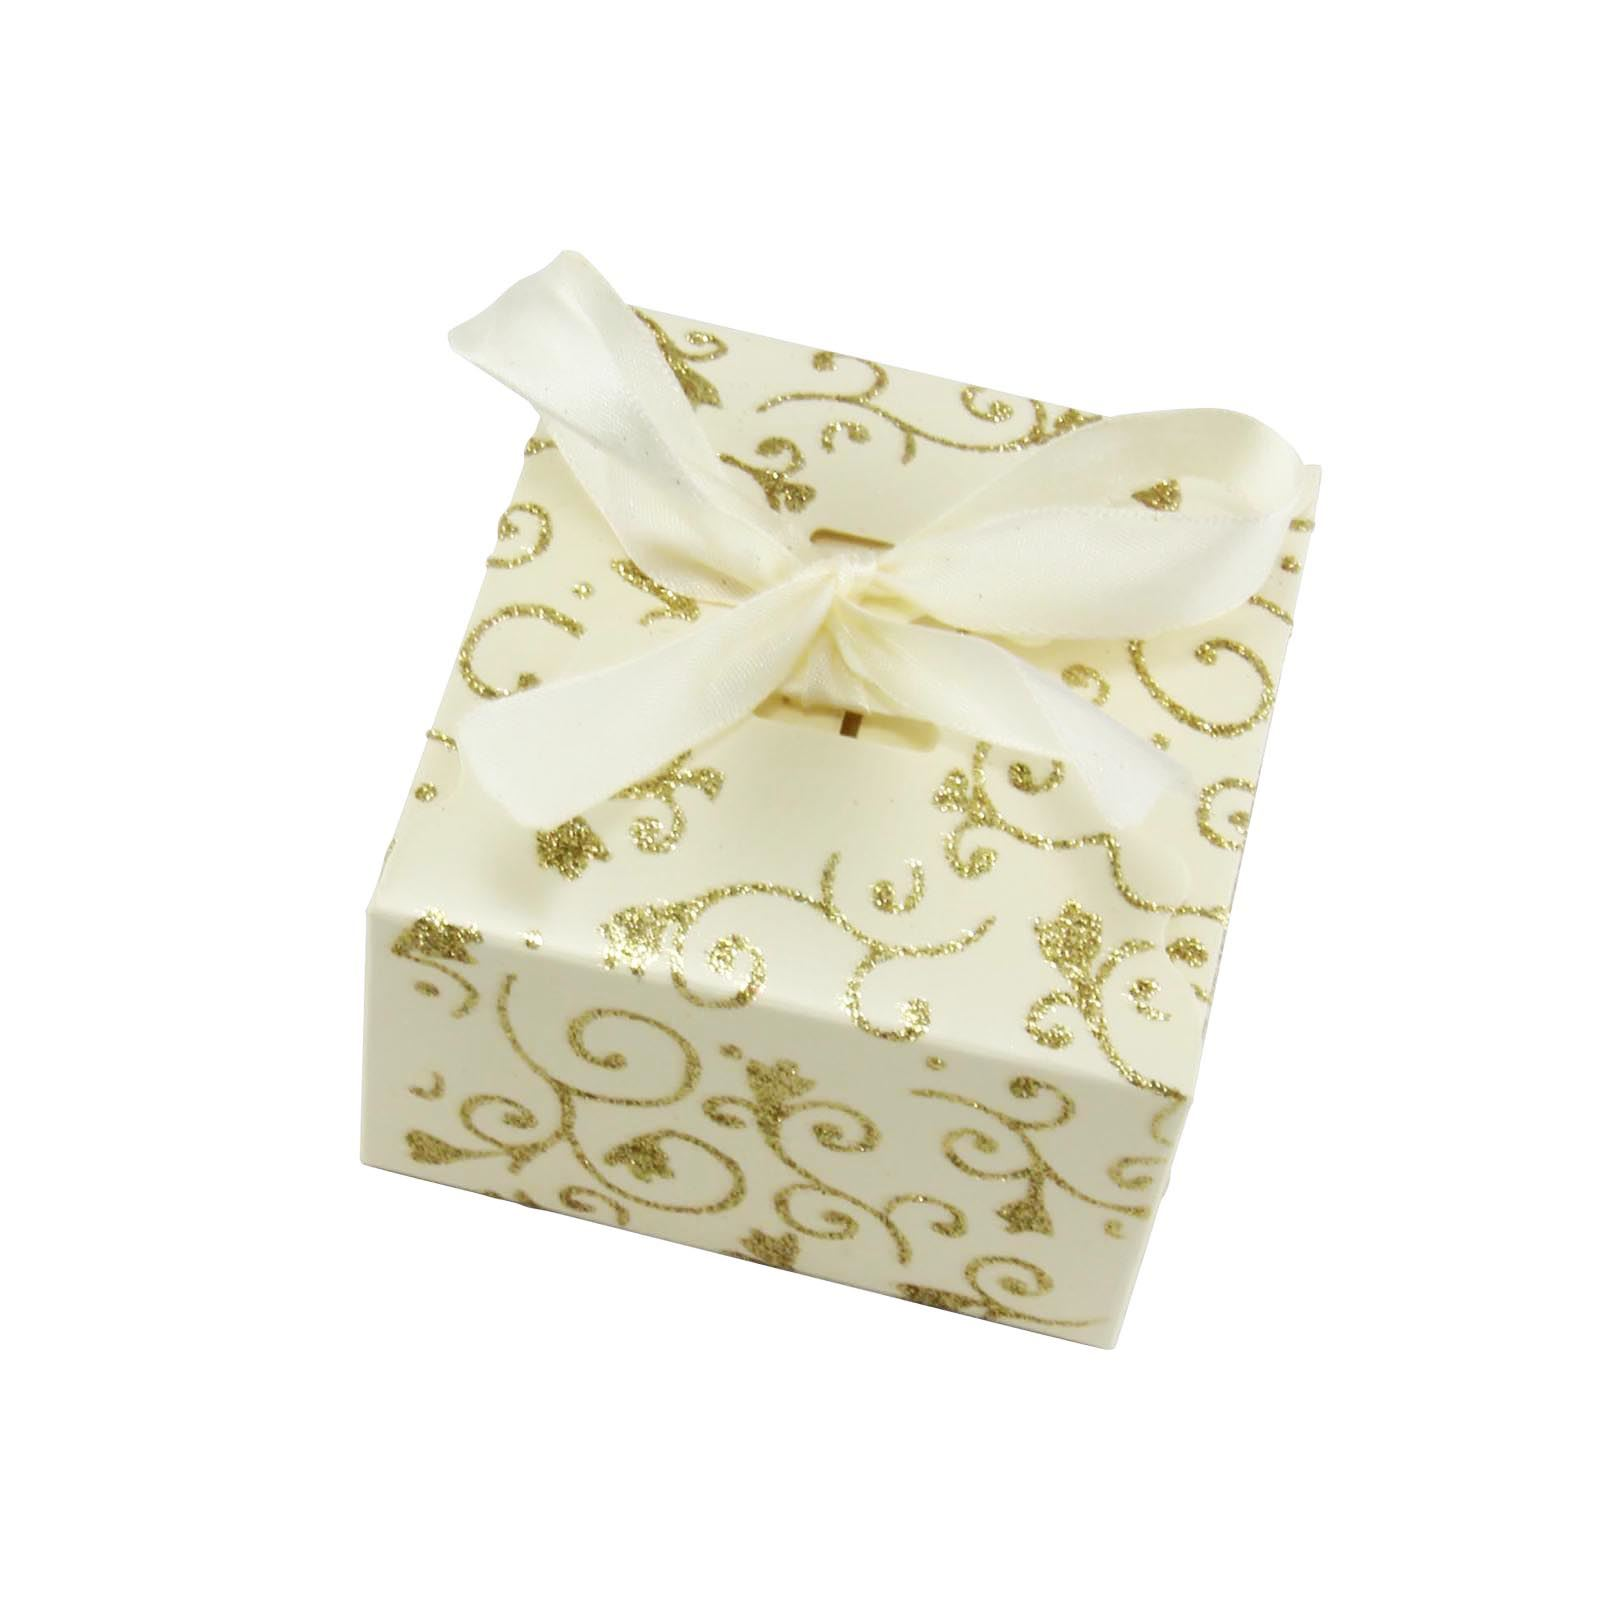 XL Large Glitter Swirl Favour Boxes with Ribbon - Wedding Asian ...